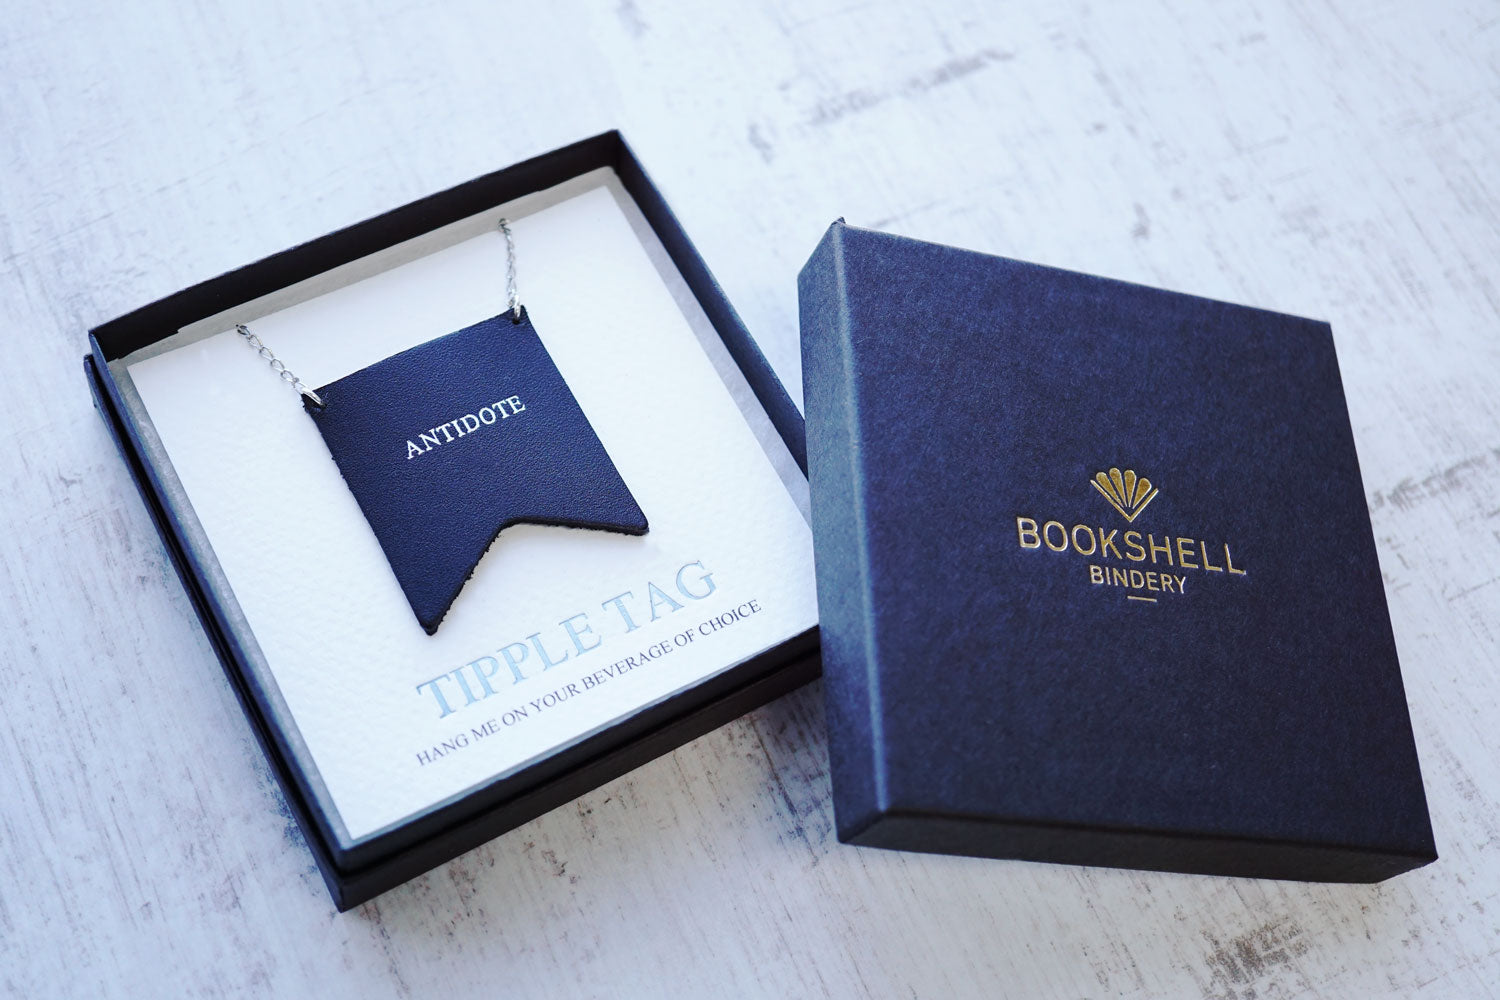 Custom decanter tags from Bookshell Bindery are ready to gift in a beautiful gift box